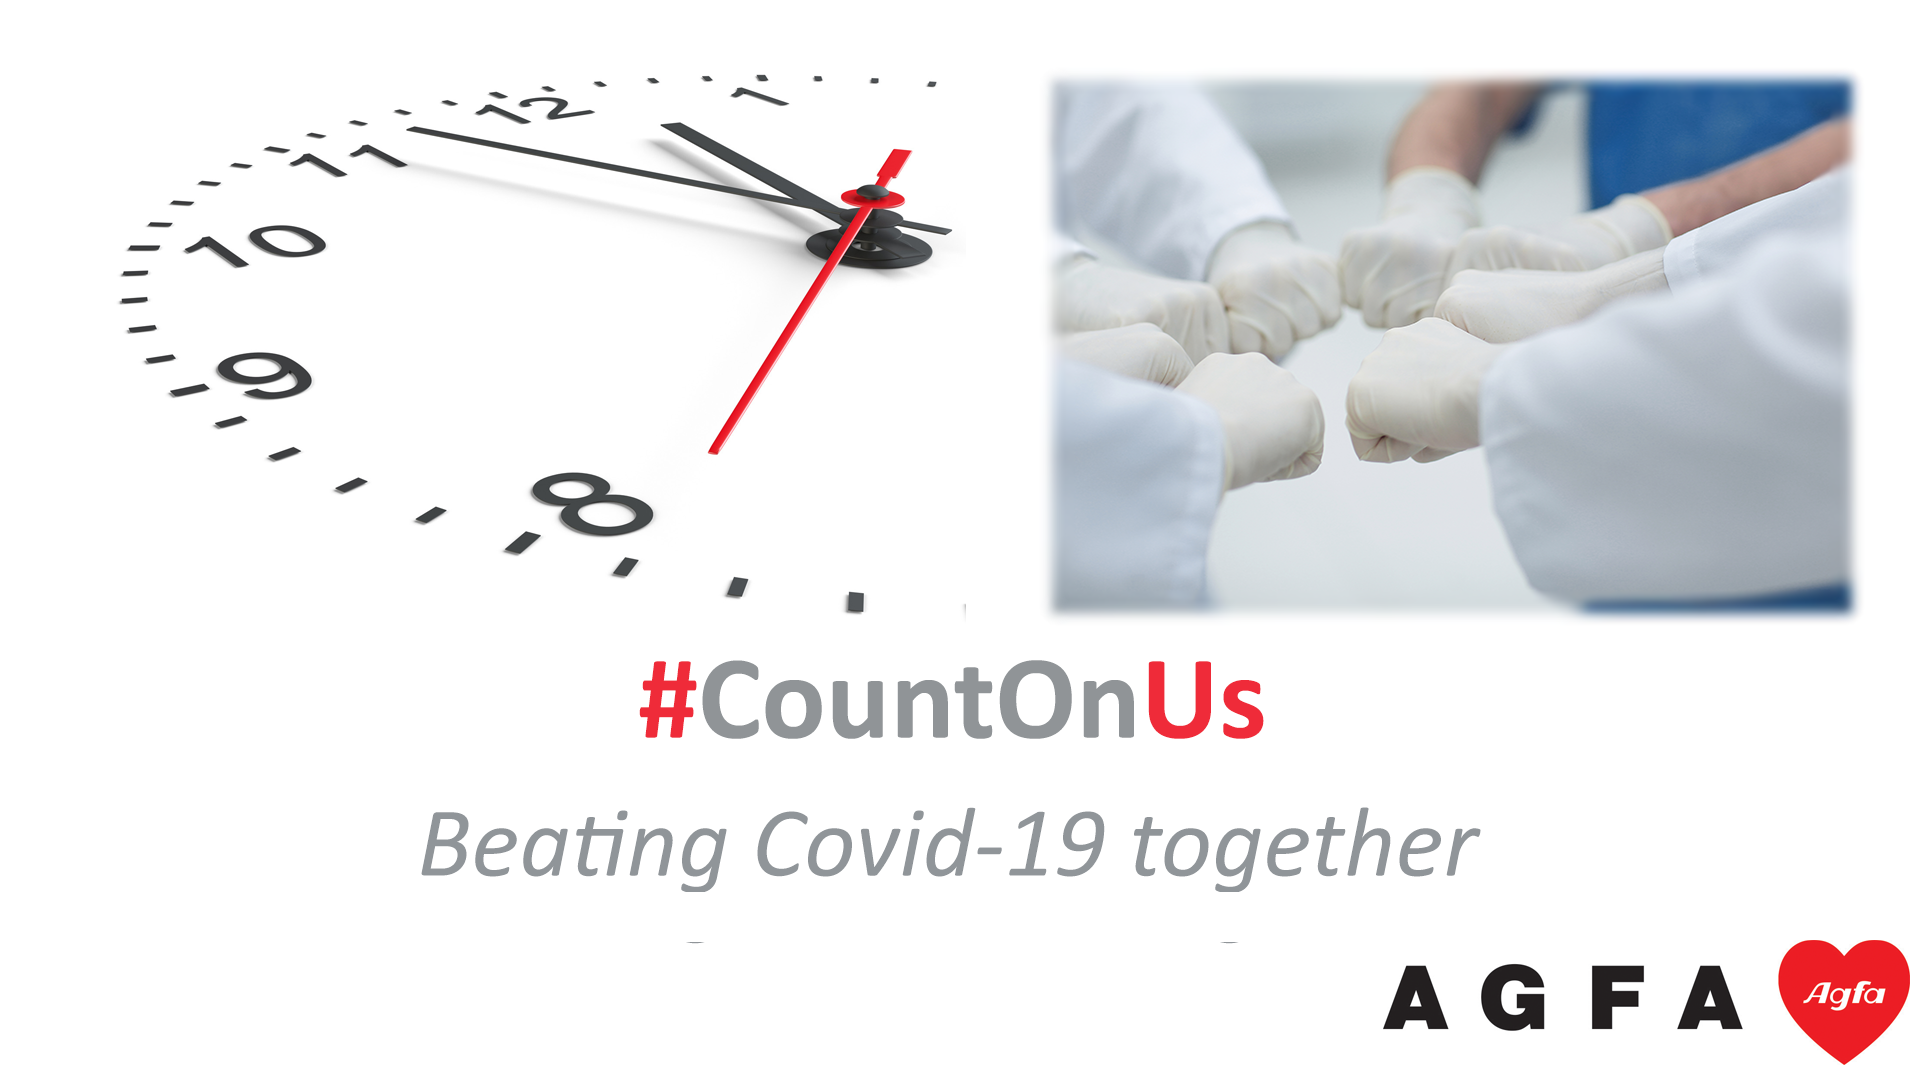 CountOnUS, Beating Covid-19 together, Agfa